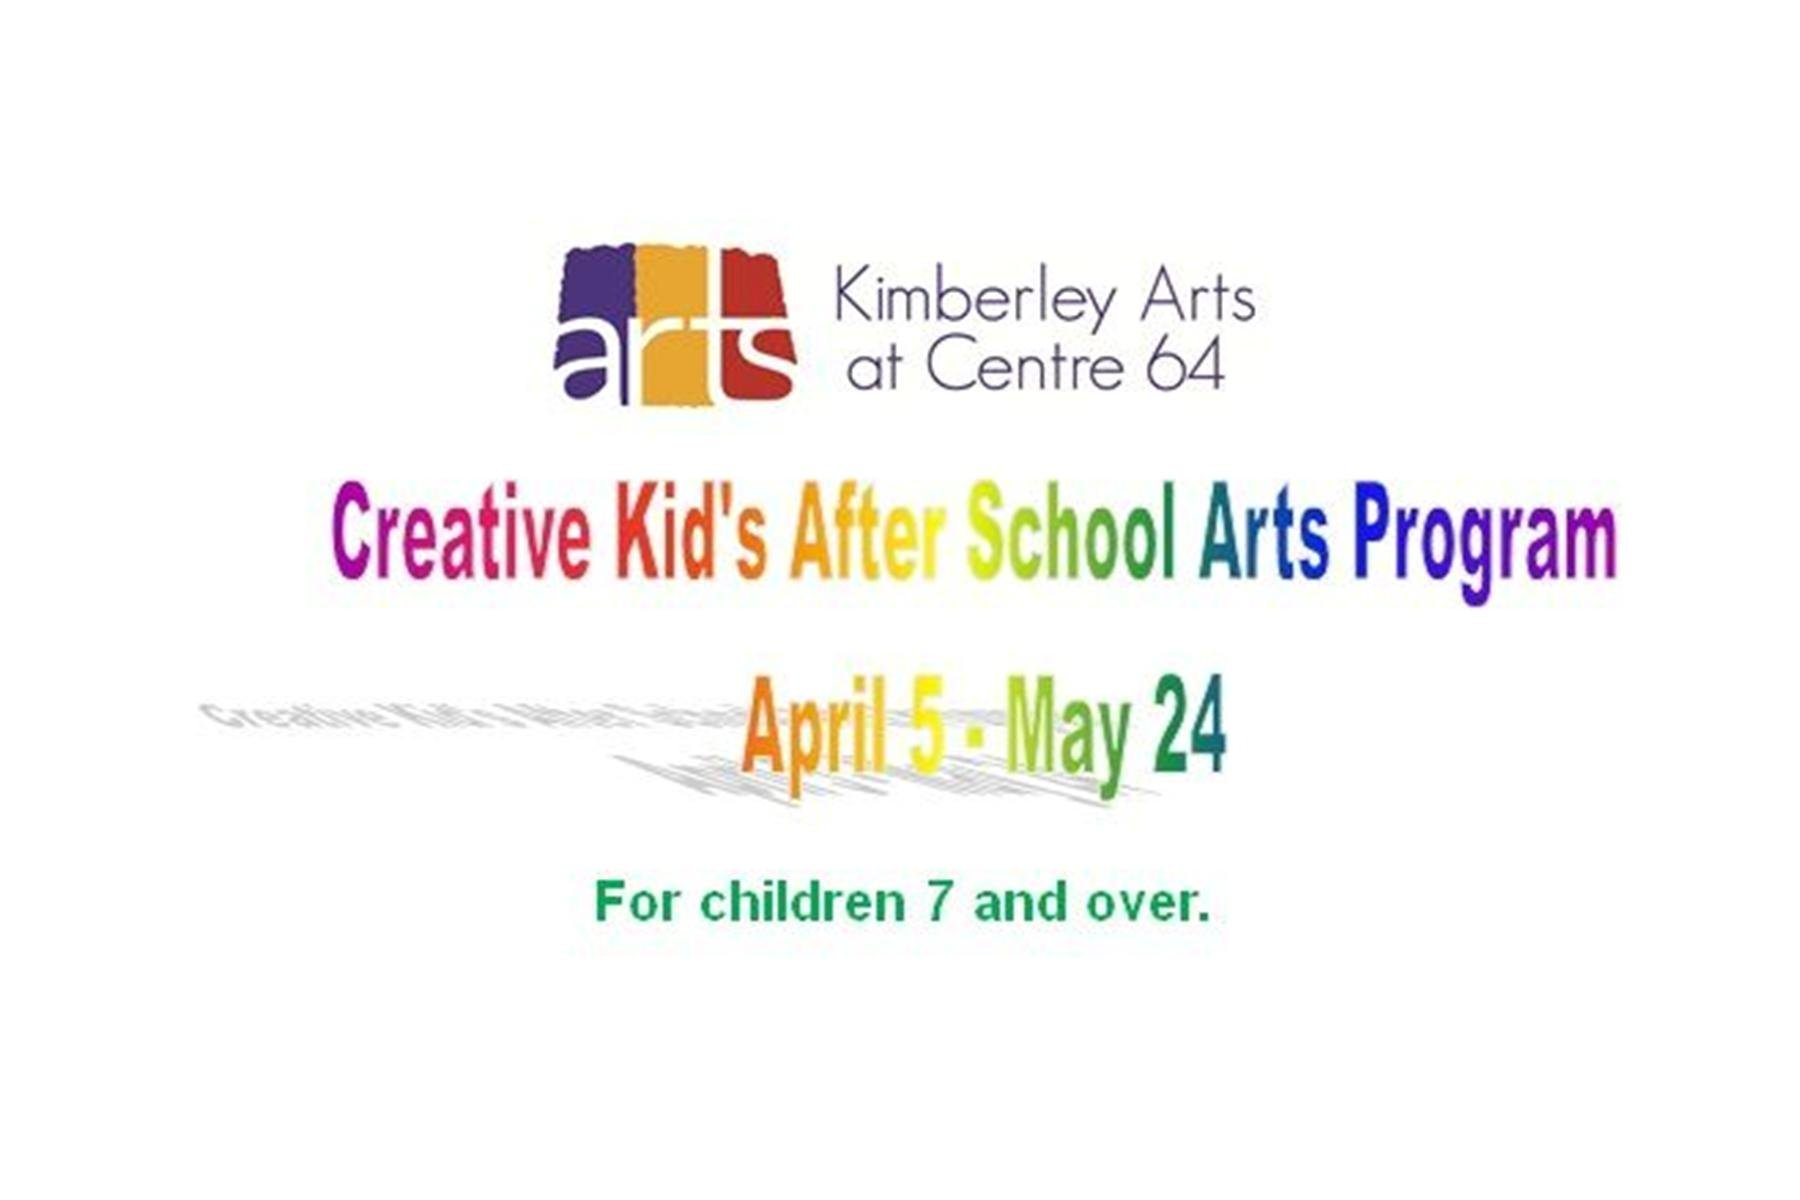 Creative Kid's After School Arts Program